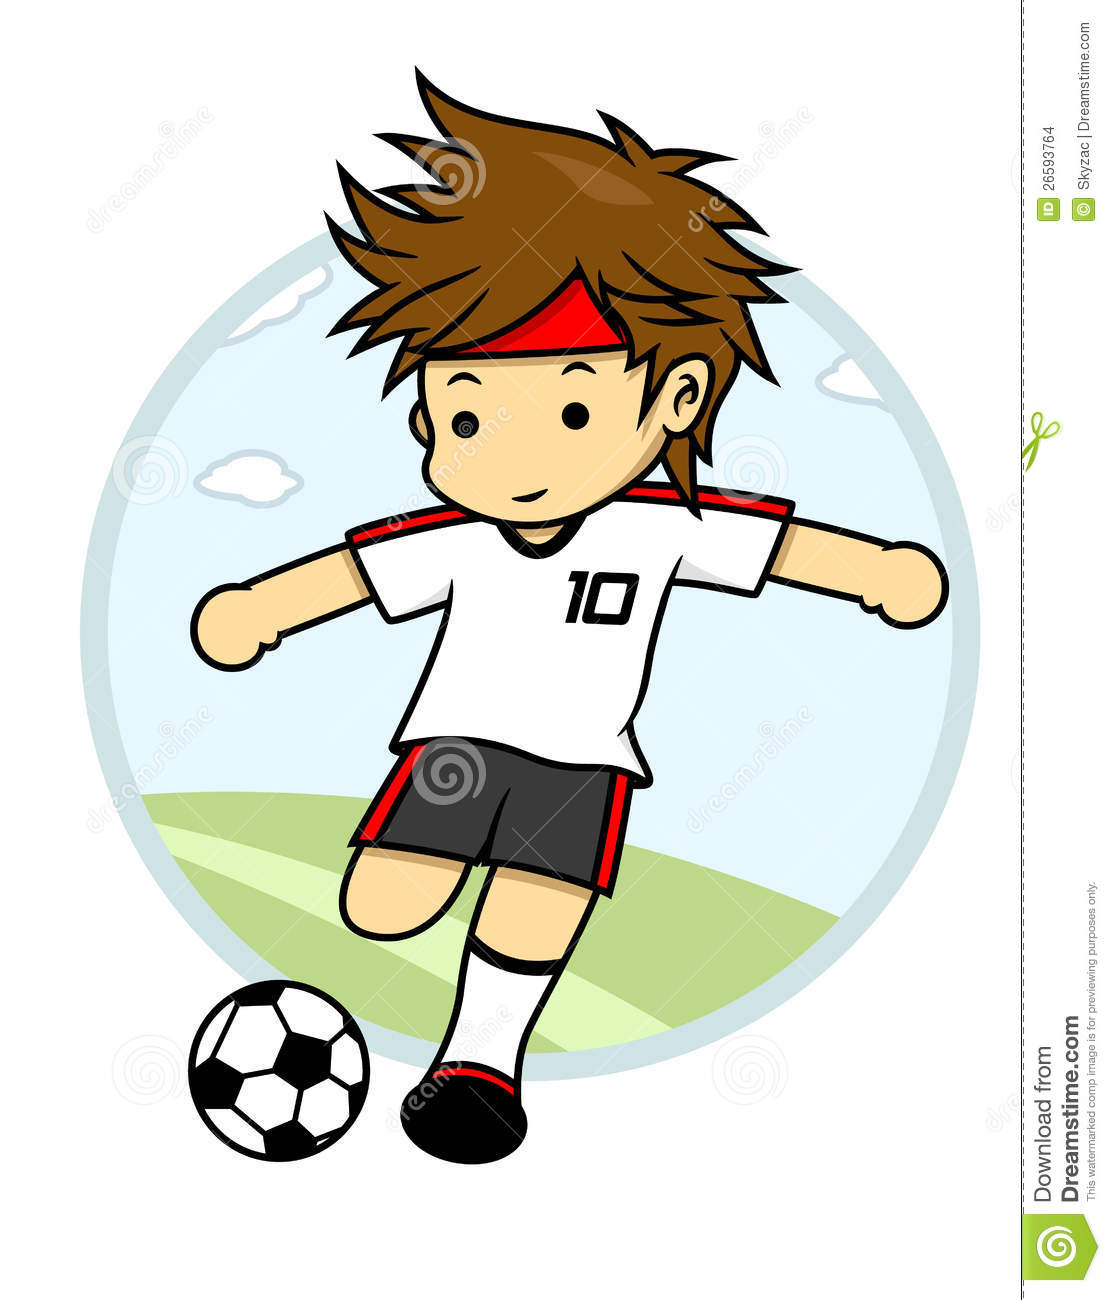 Kicking A Soccer Goal Clipart | Clipart Panda - Free Clipart Images